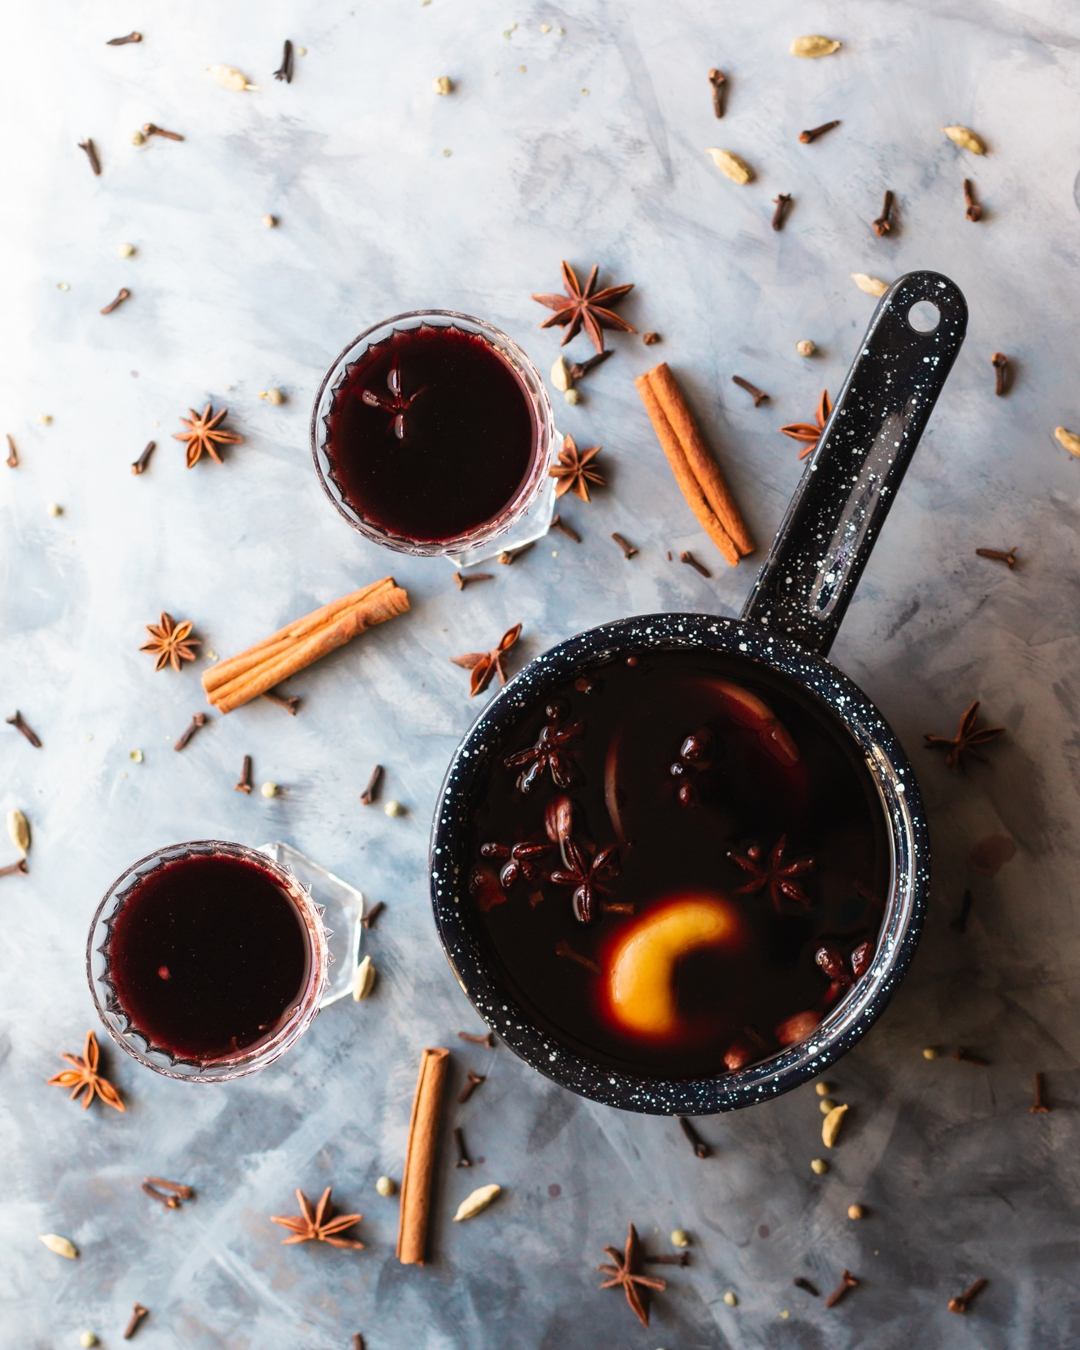 Overhead shot of saucepan filled with mulled wine surrounded by two full glasses of mulled wine and spices.